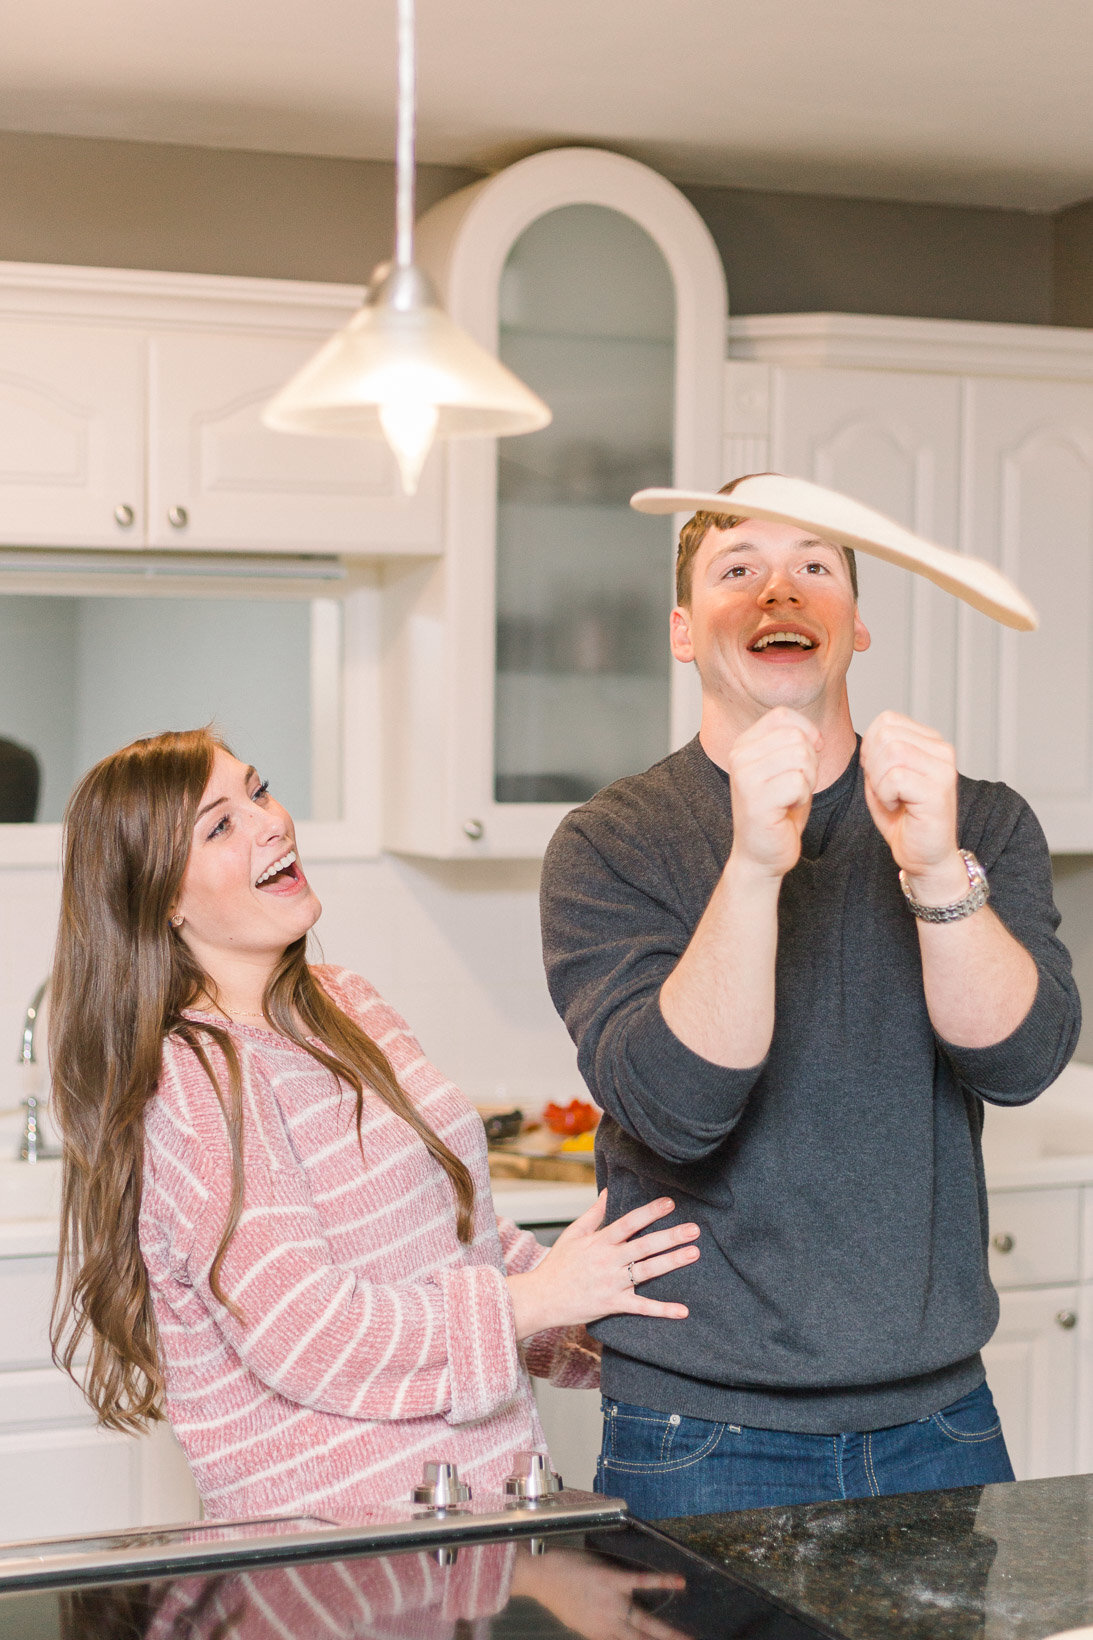 Tossing pizza dough captured by Staci Addison Photography